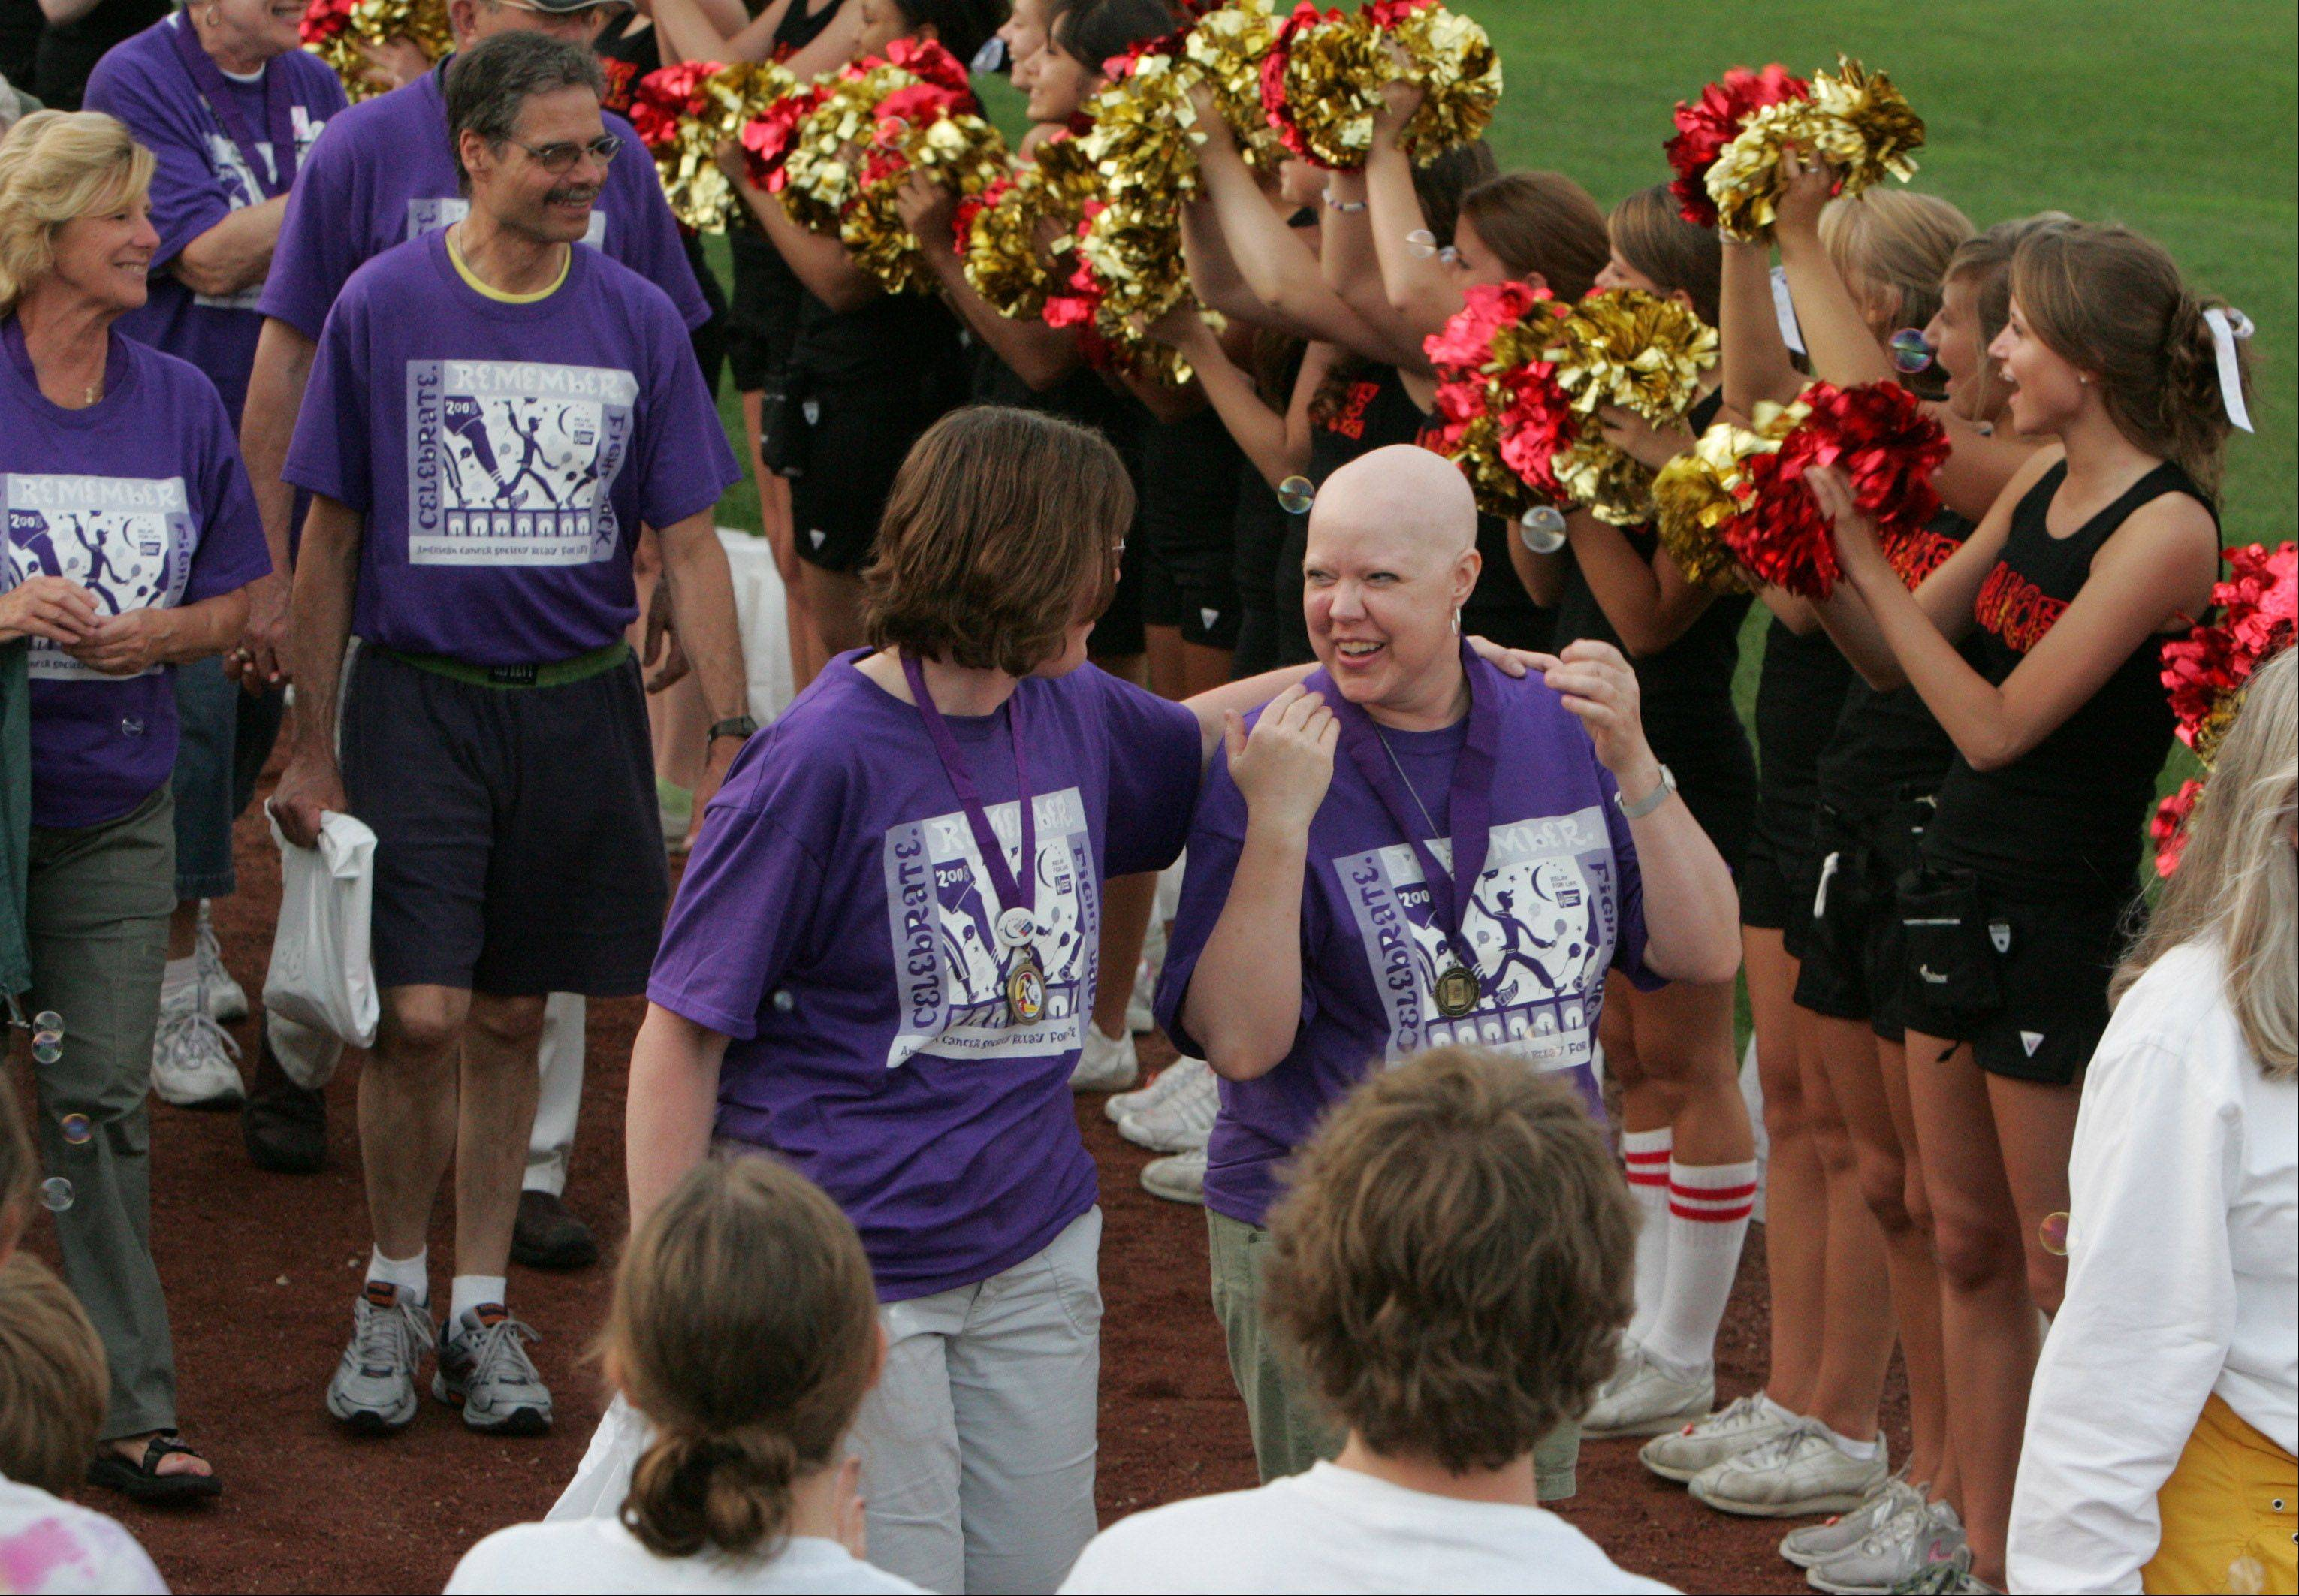 The first lap of a Relay For Life is a Survivors Lap, celebrating victories large and small over cancer. Survivors often are followed by caregivers.